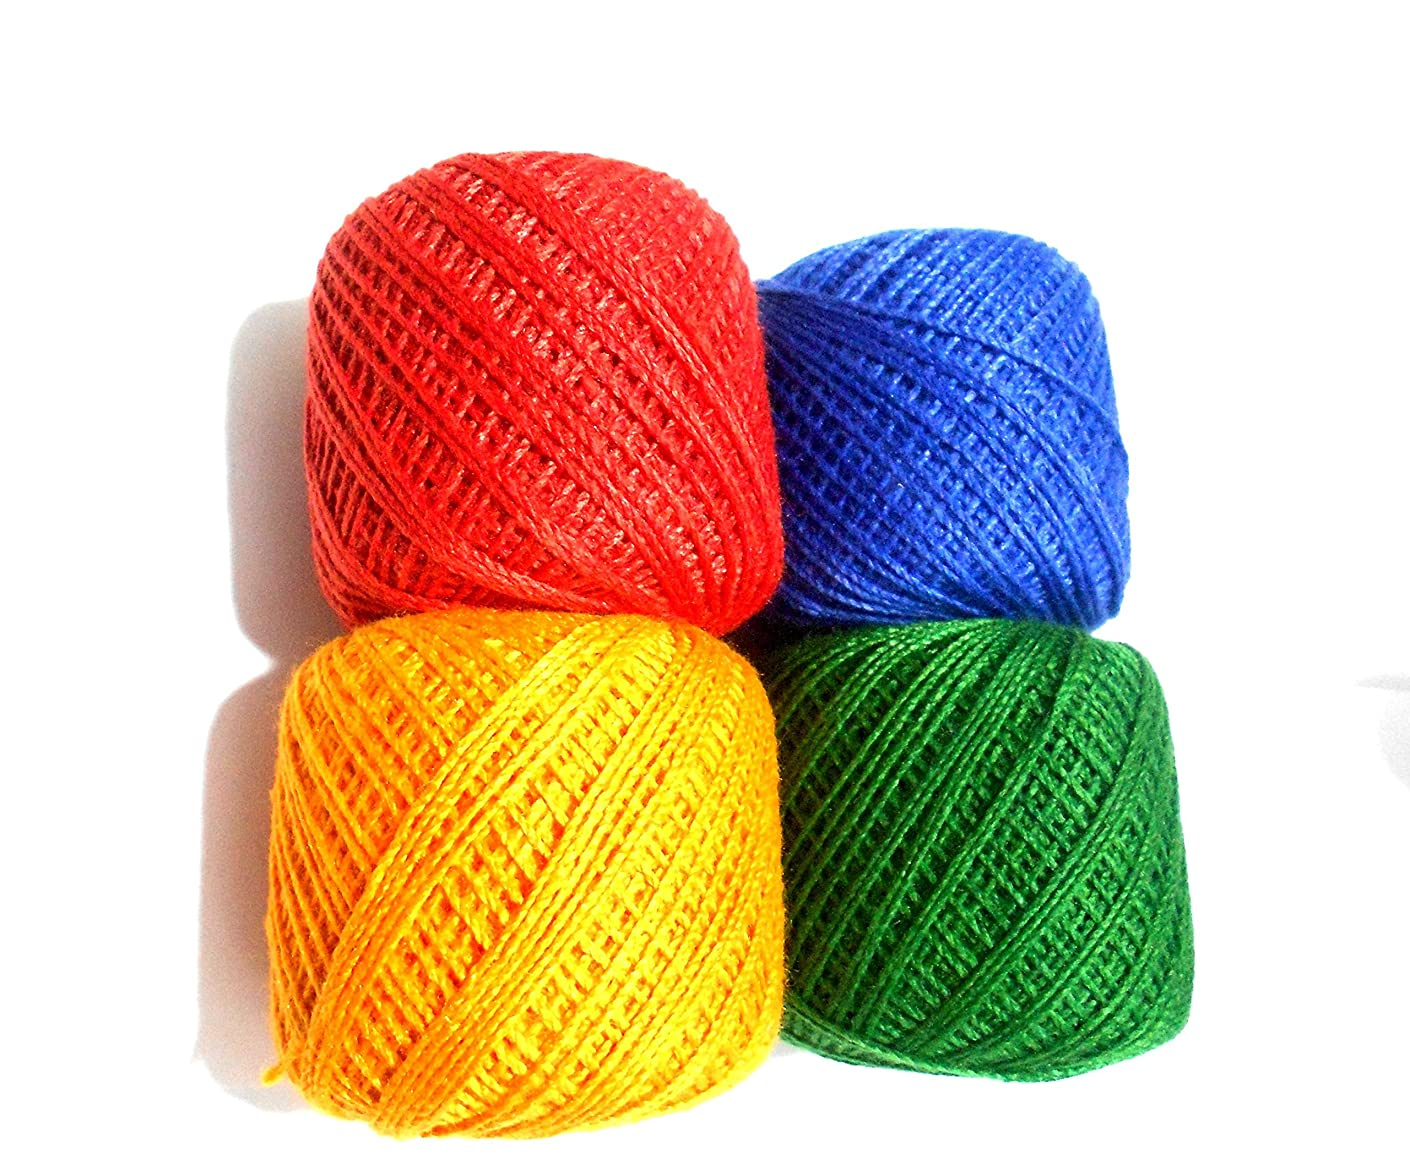 GOELX Thread Rolls Combo For Making Thread Balls For Jewelry/Crafts/Jewelry Wrapping